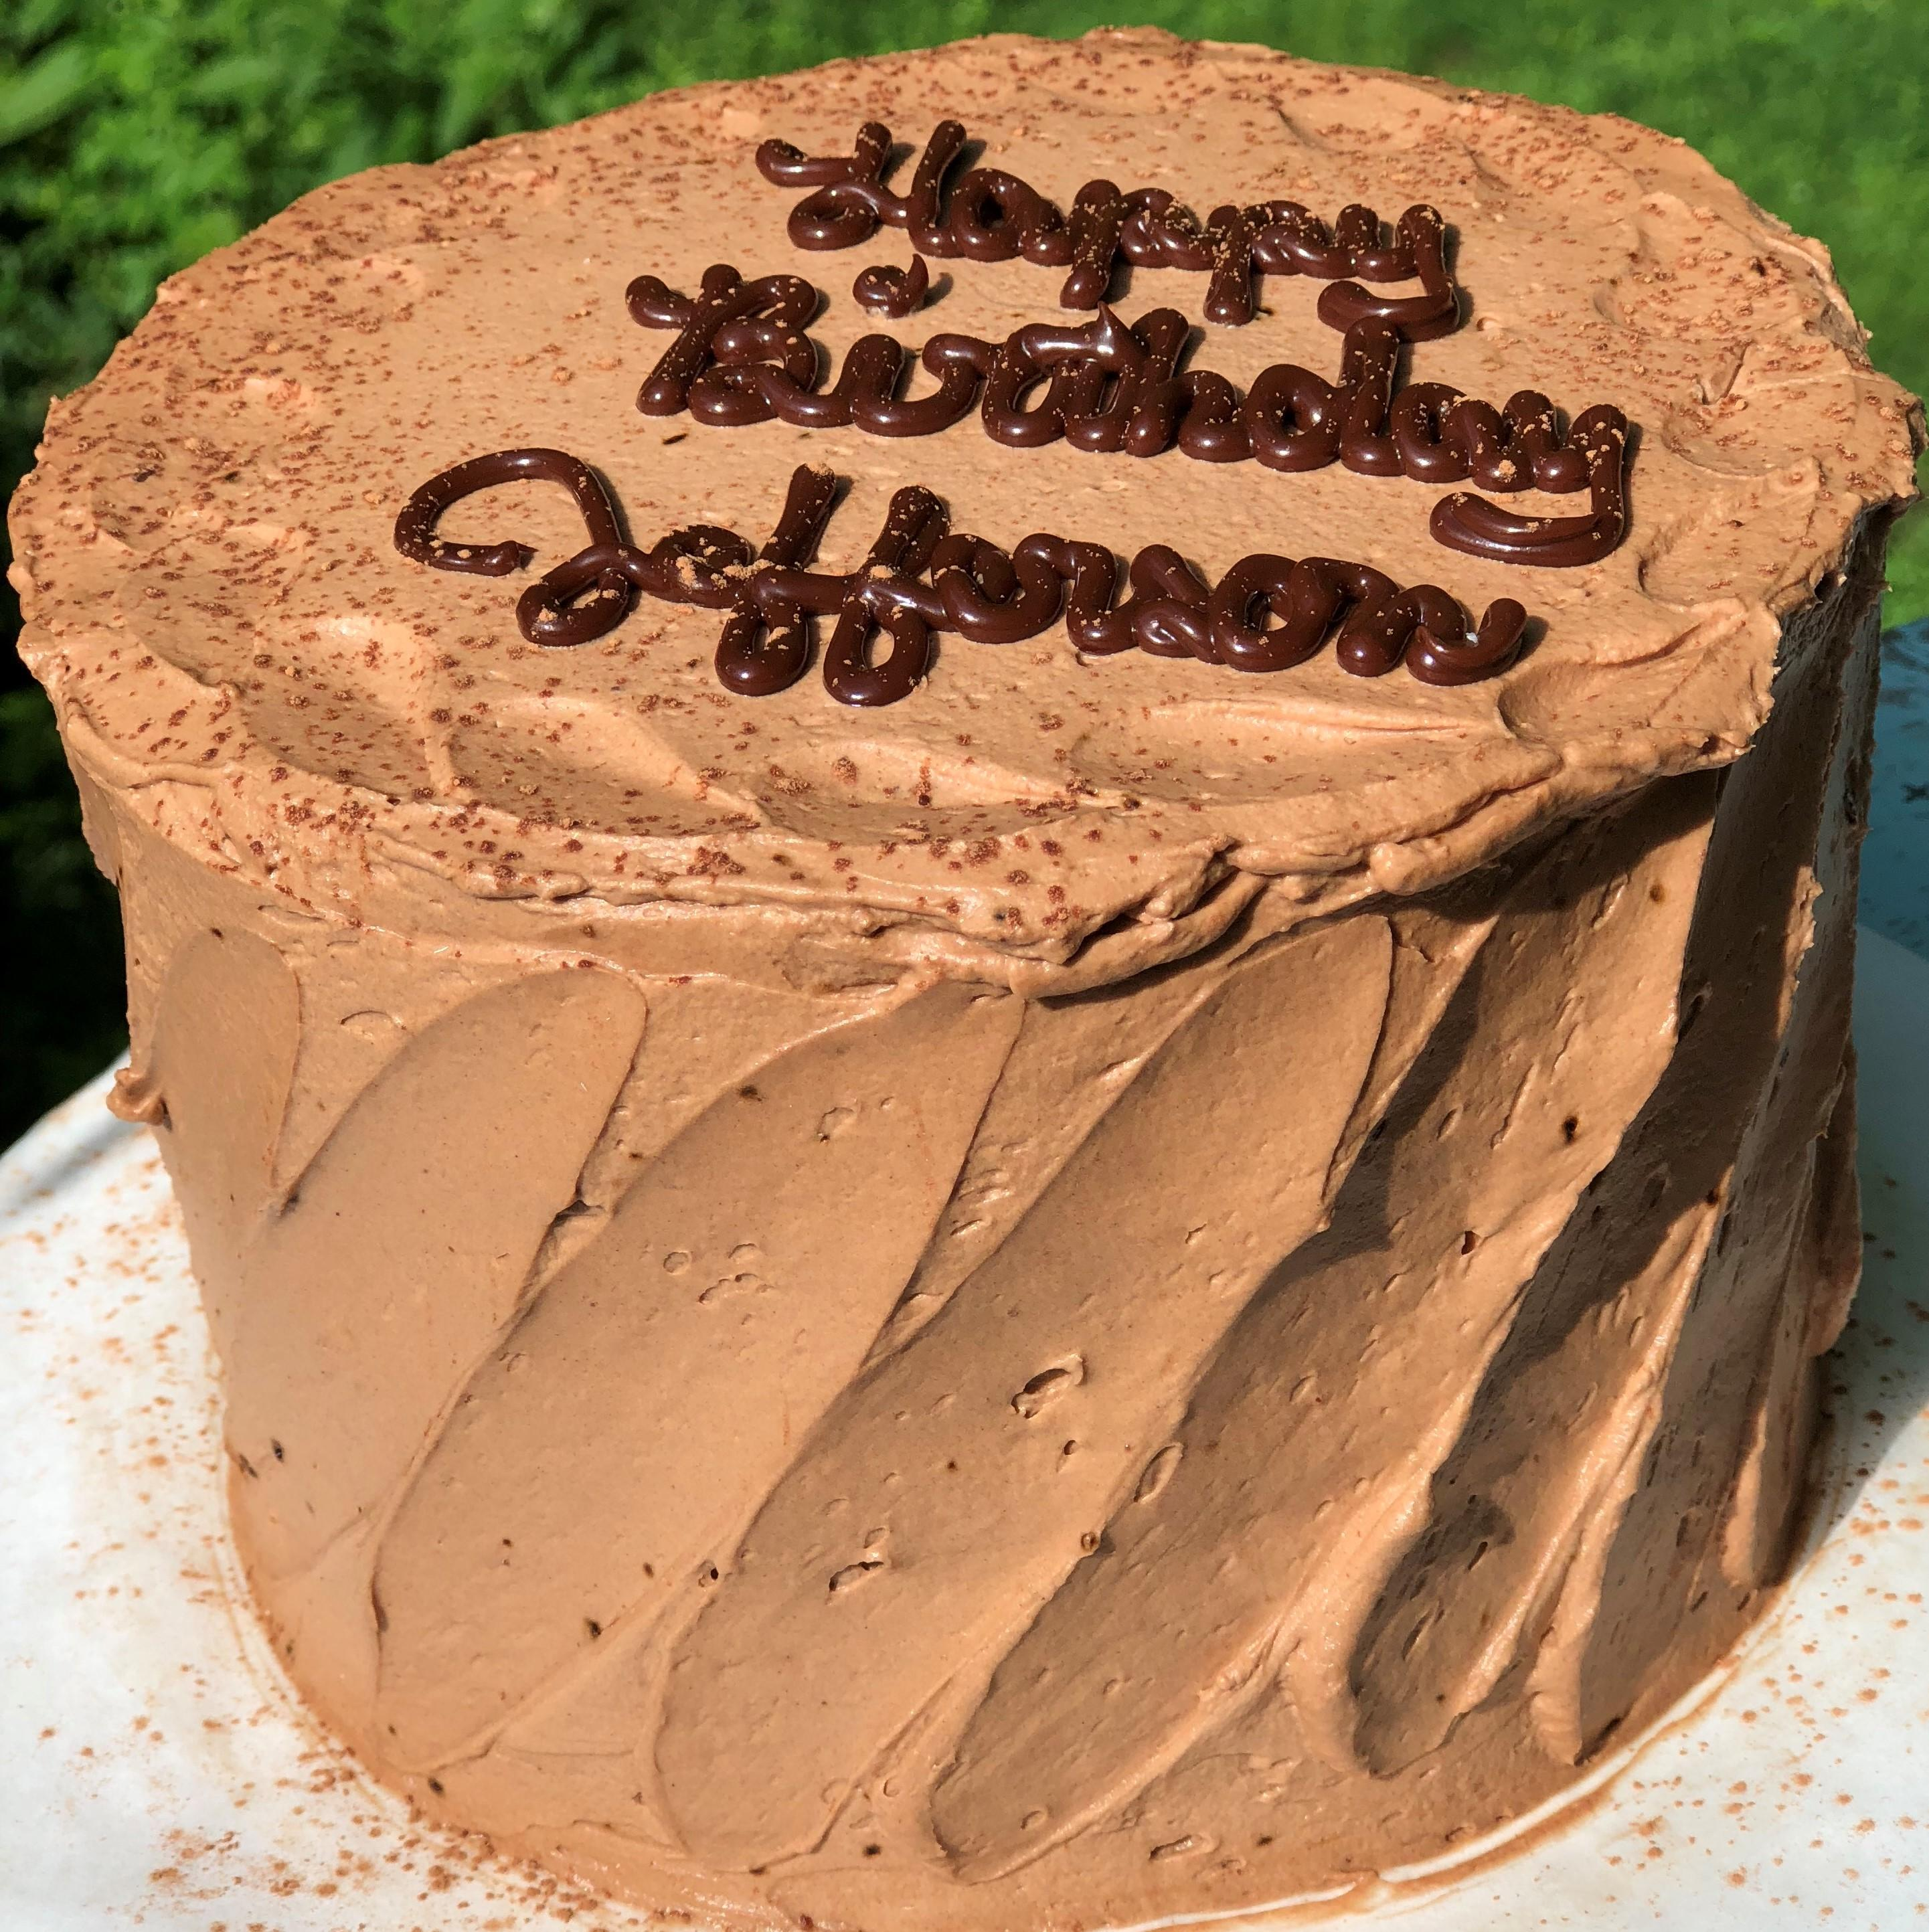 CareAway Cakes & Gifts image 2